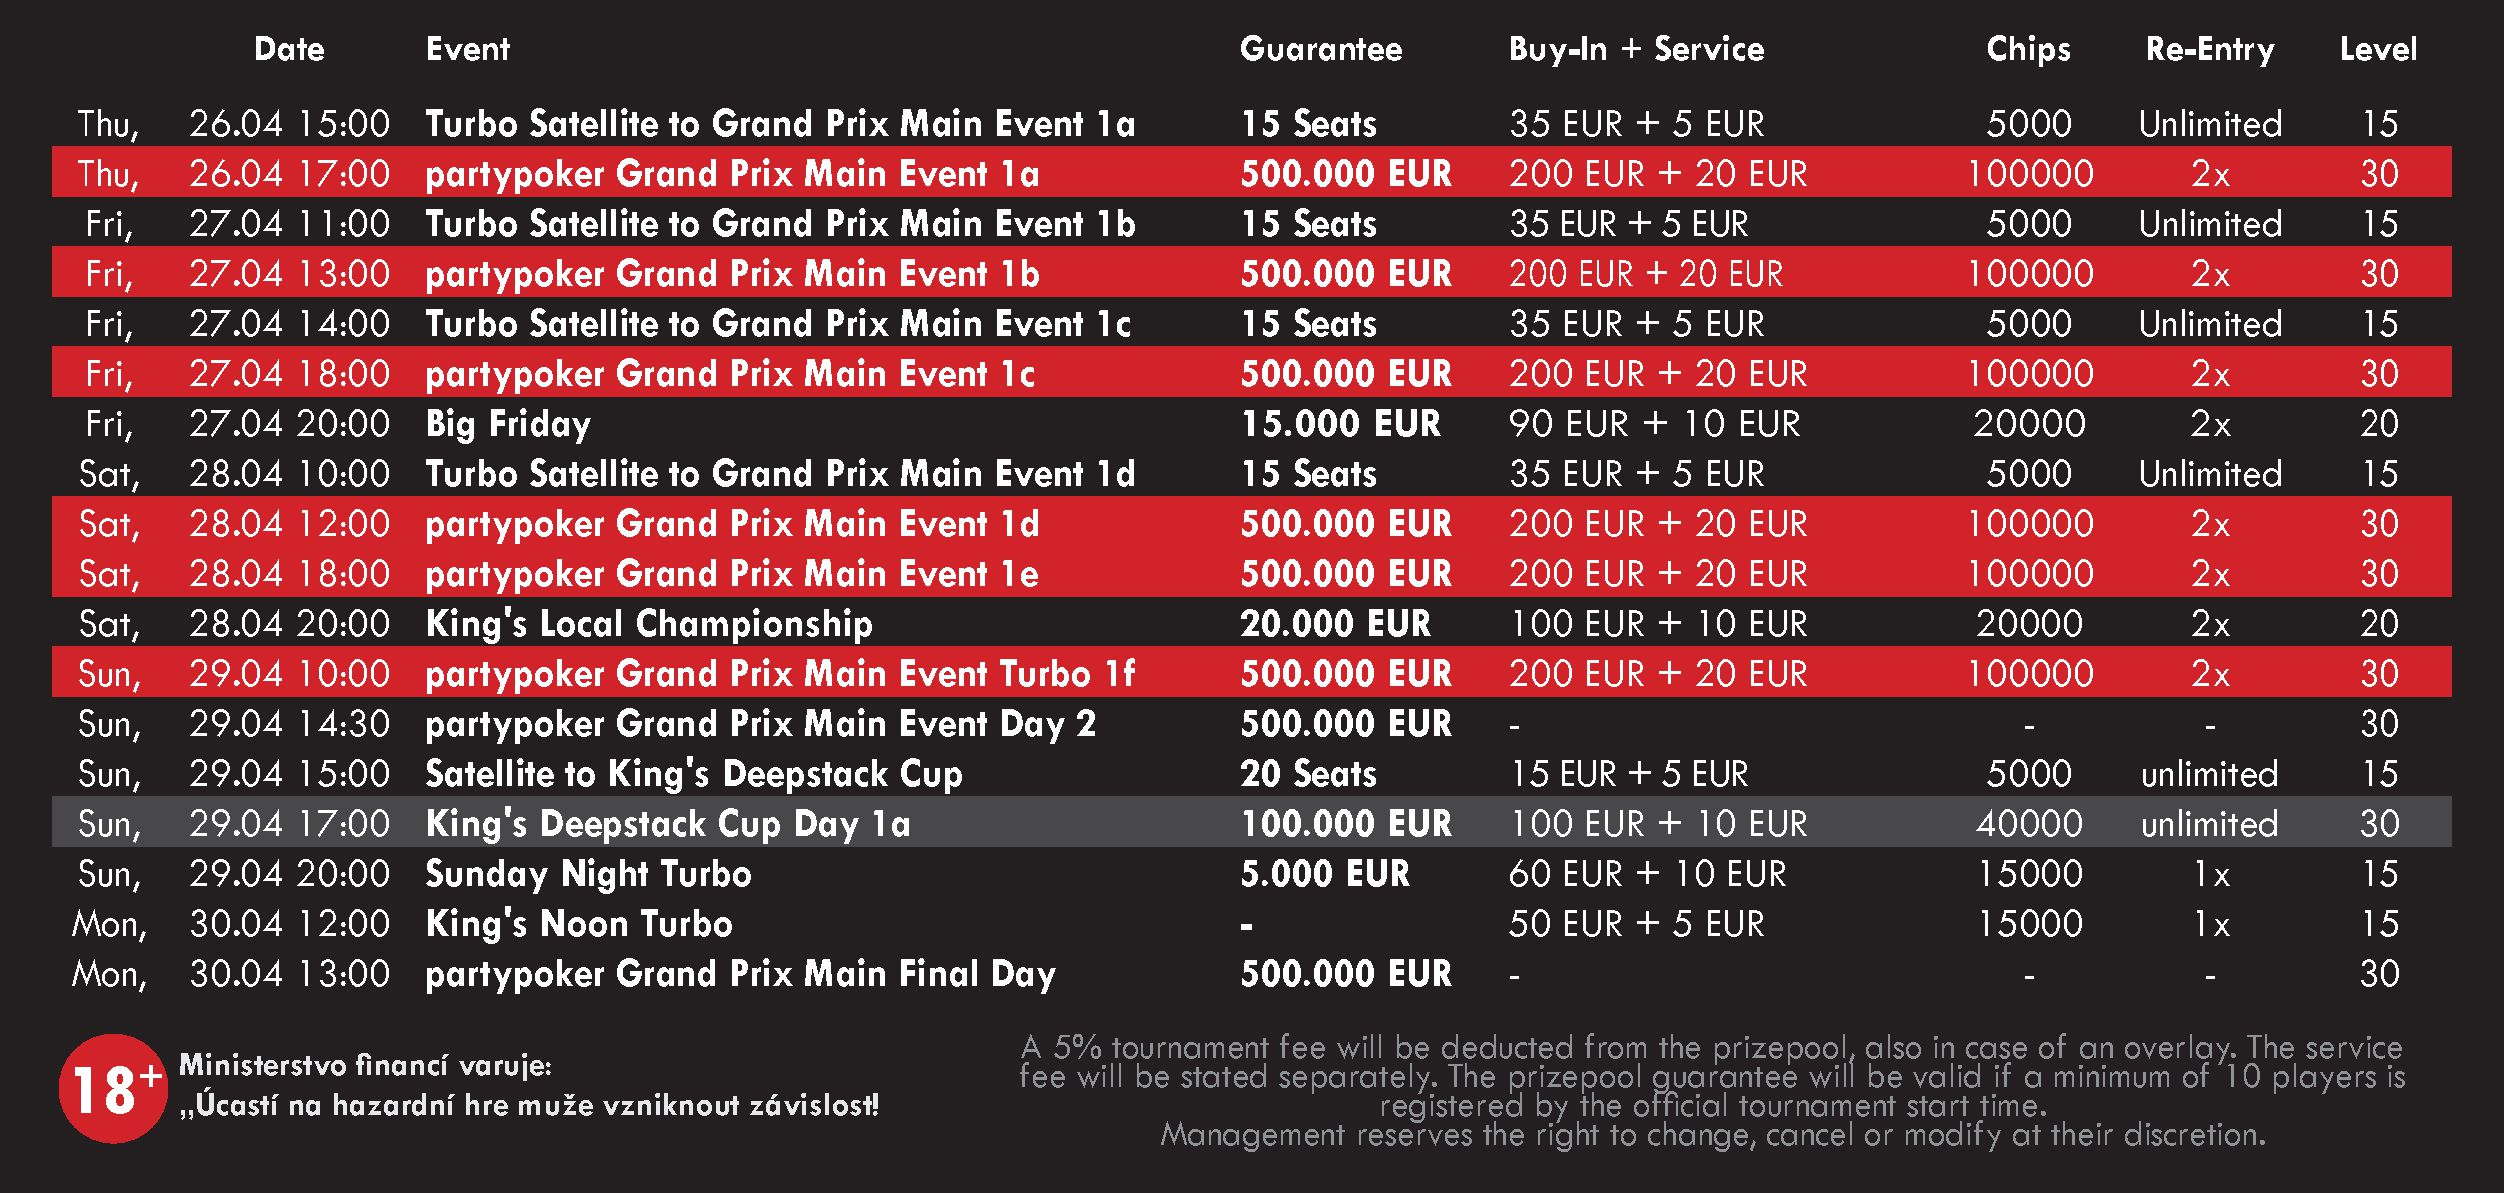 partypoker Grand Prix Germany Schedule